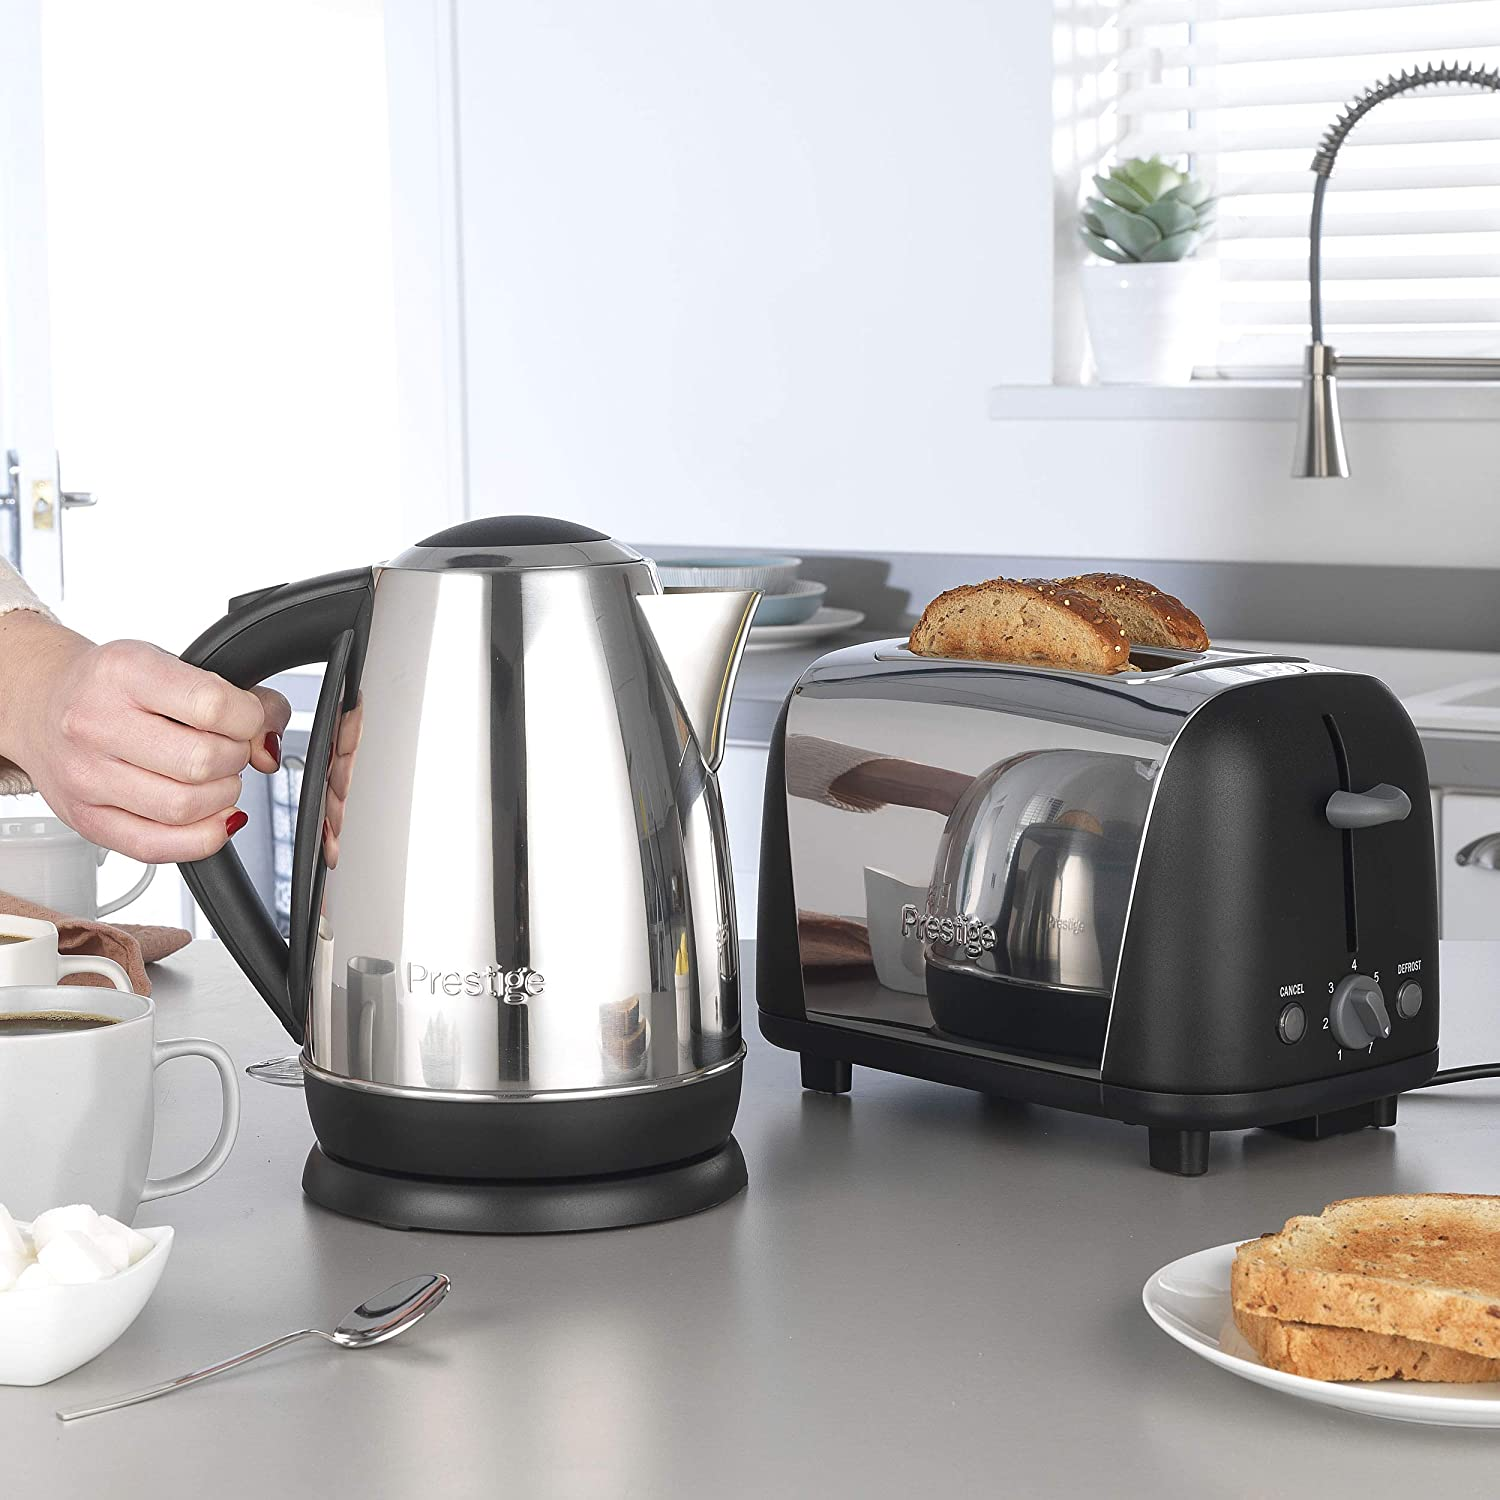 Prestige 53233 Cordless 1.7L Kettle and 2-Slice Toaster, Stainless Steel and Almond Black